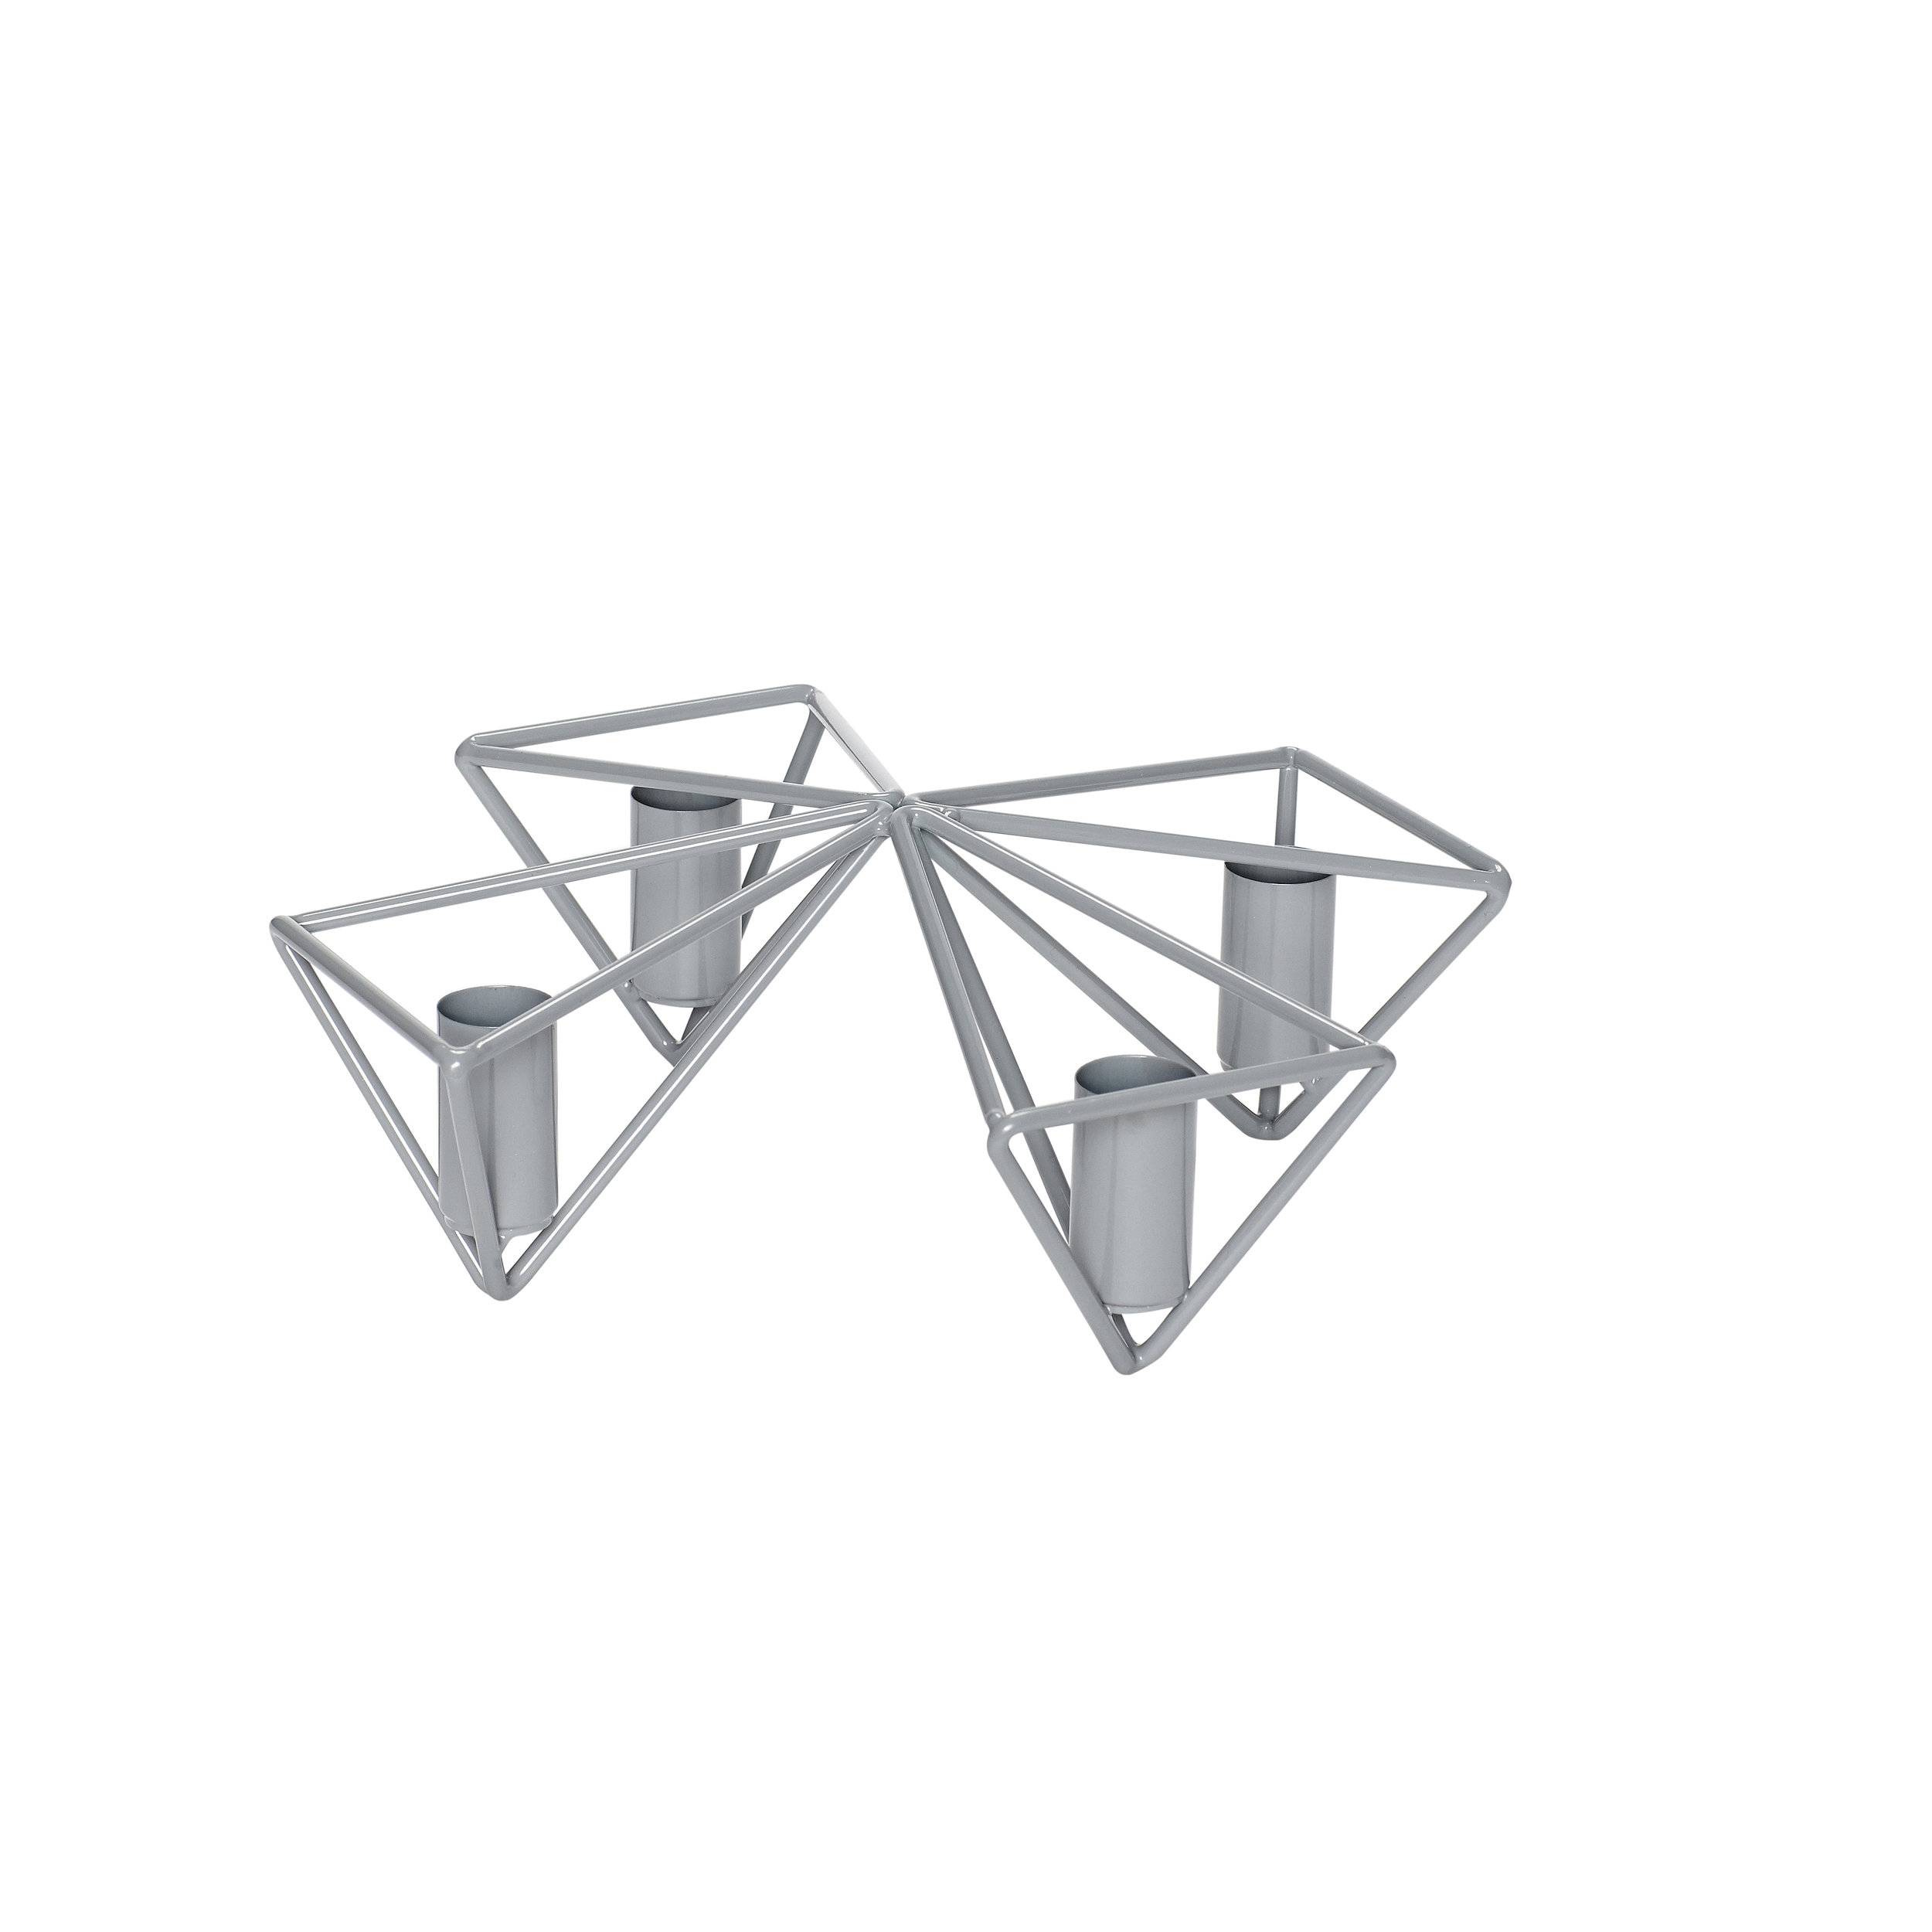 #038   Grey Metal Candle Centre Piece    21cm x H8cm Hire Price - £3.50 Minimum Order 10 Current Stock Available 24